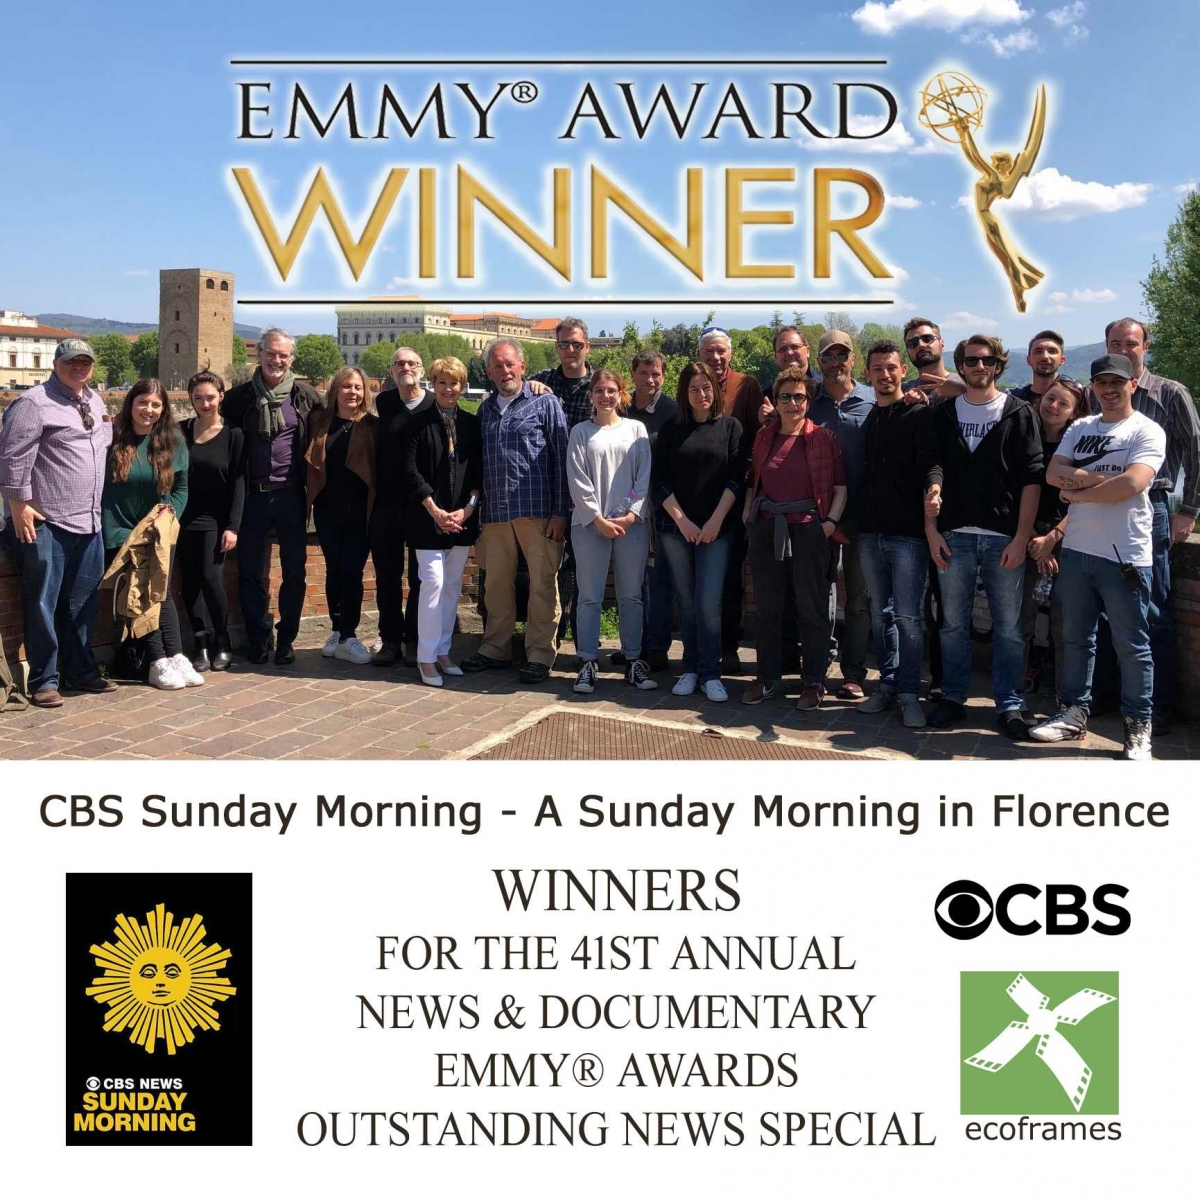 emmy awards ecoframes 2